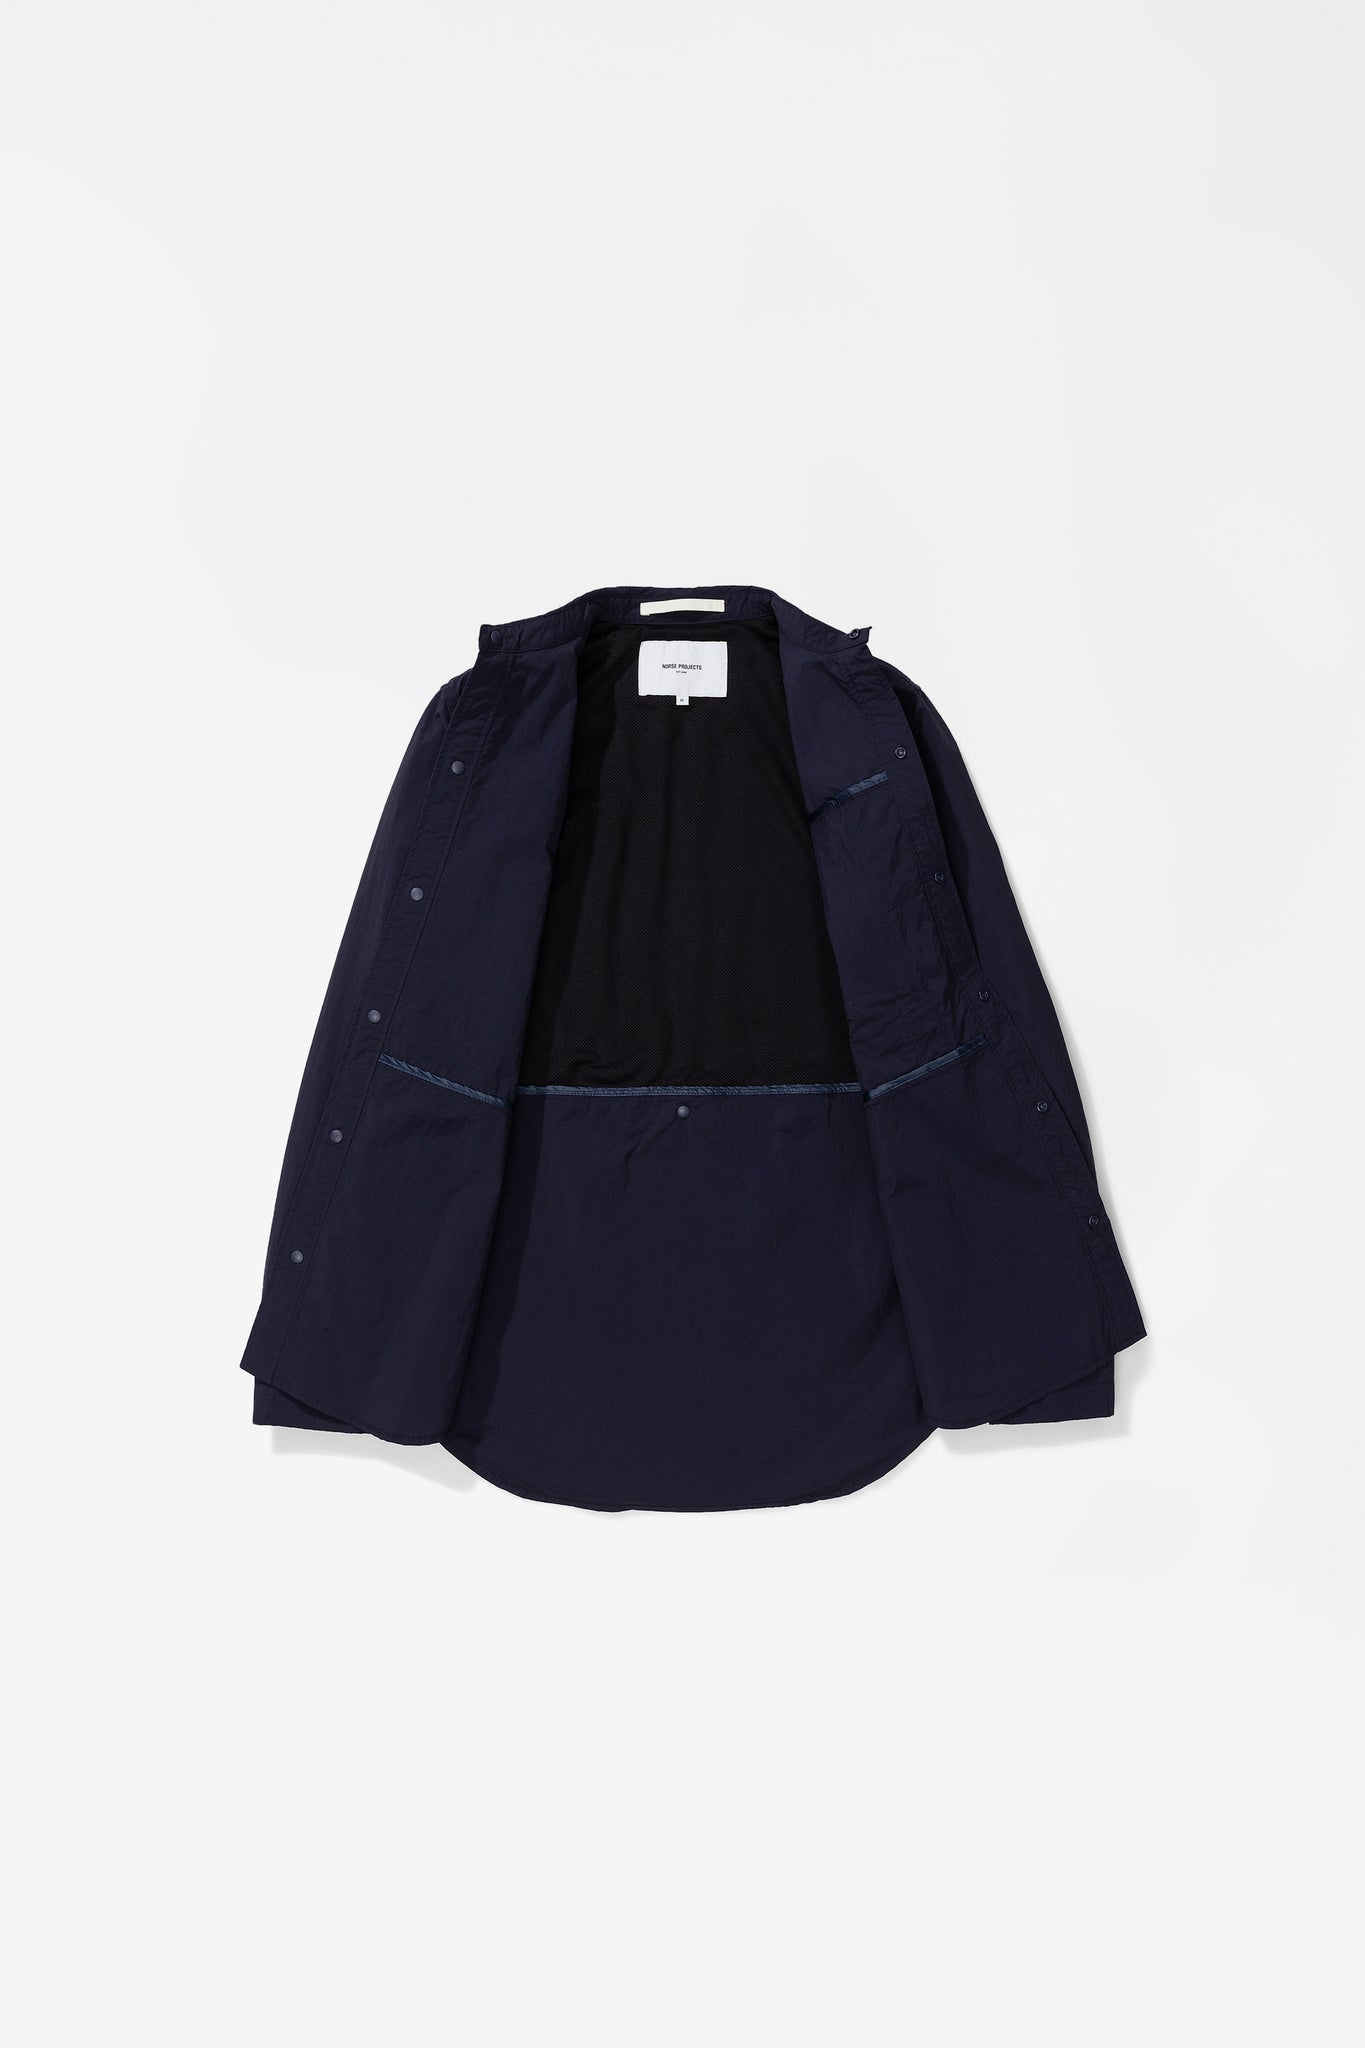 Thorsten packable dark navy